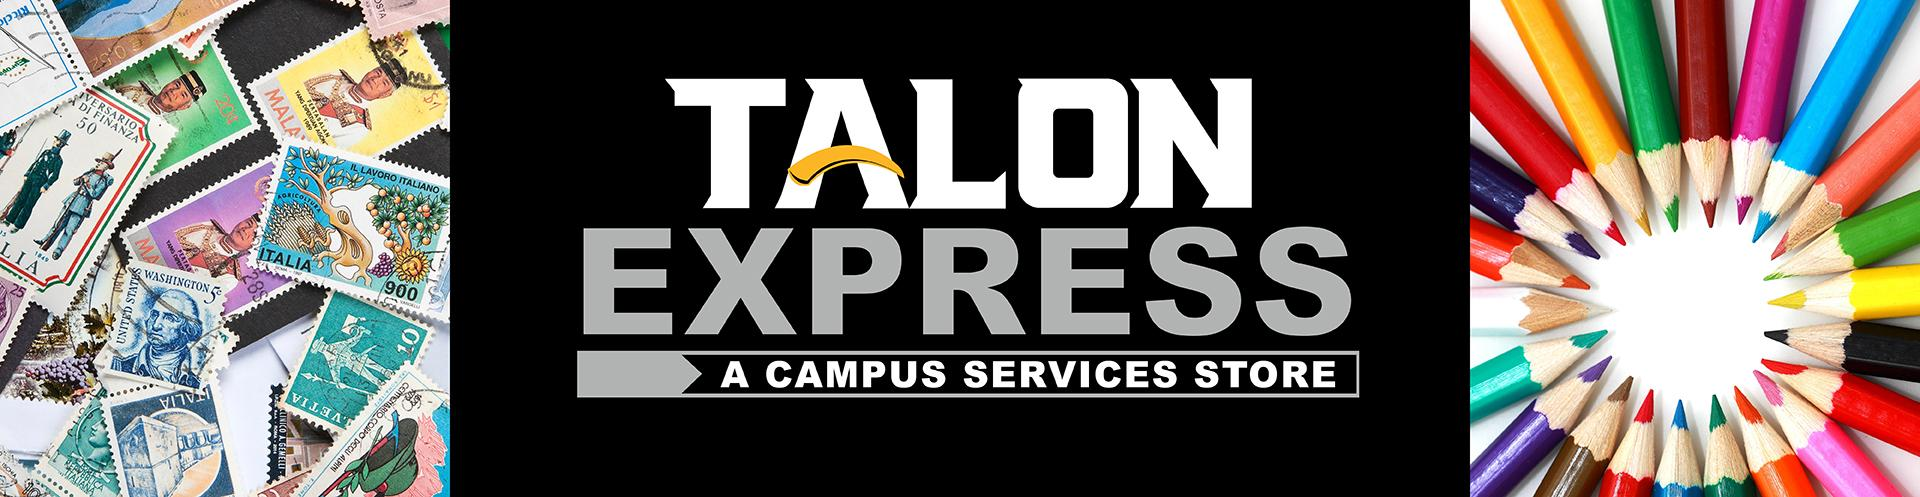 Welcome to Talon Express!